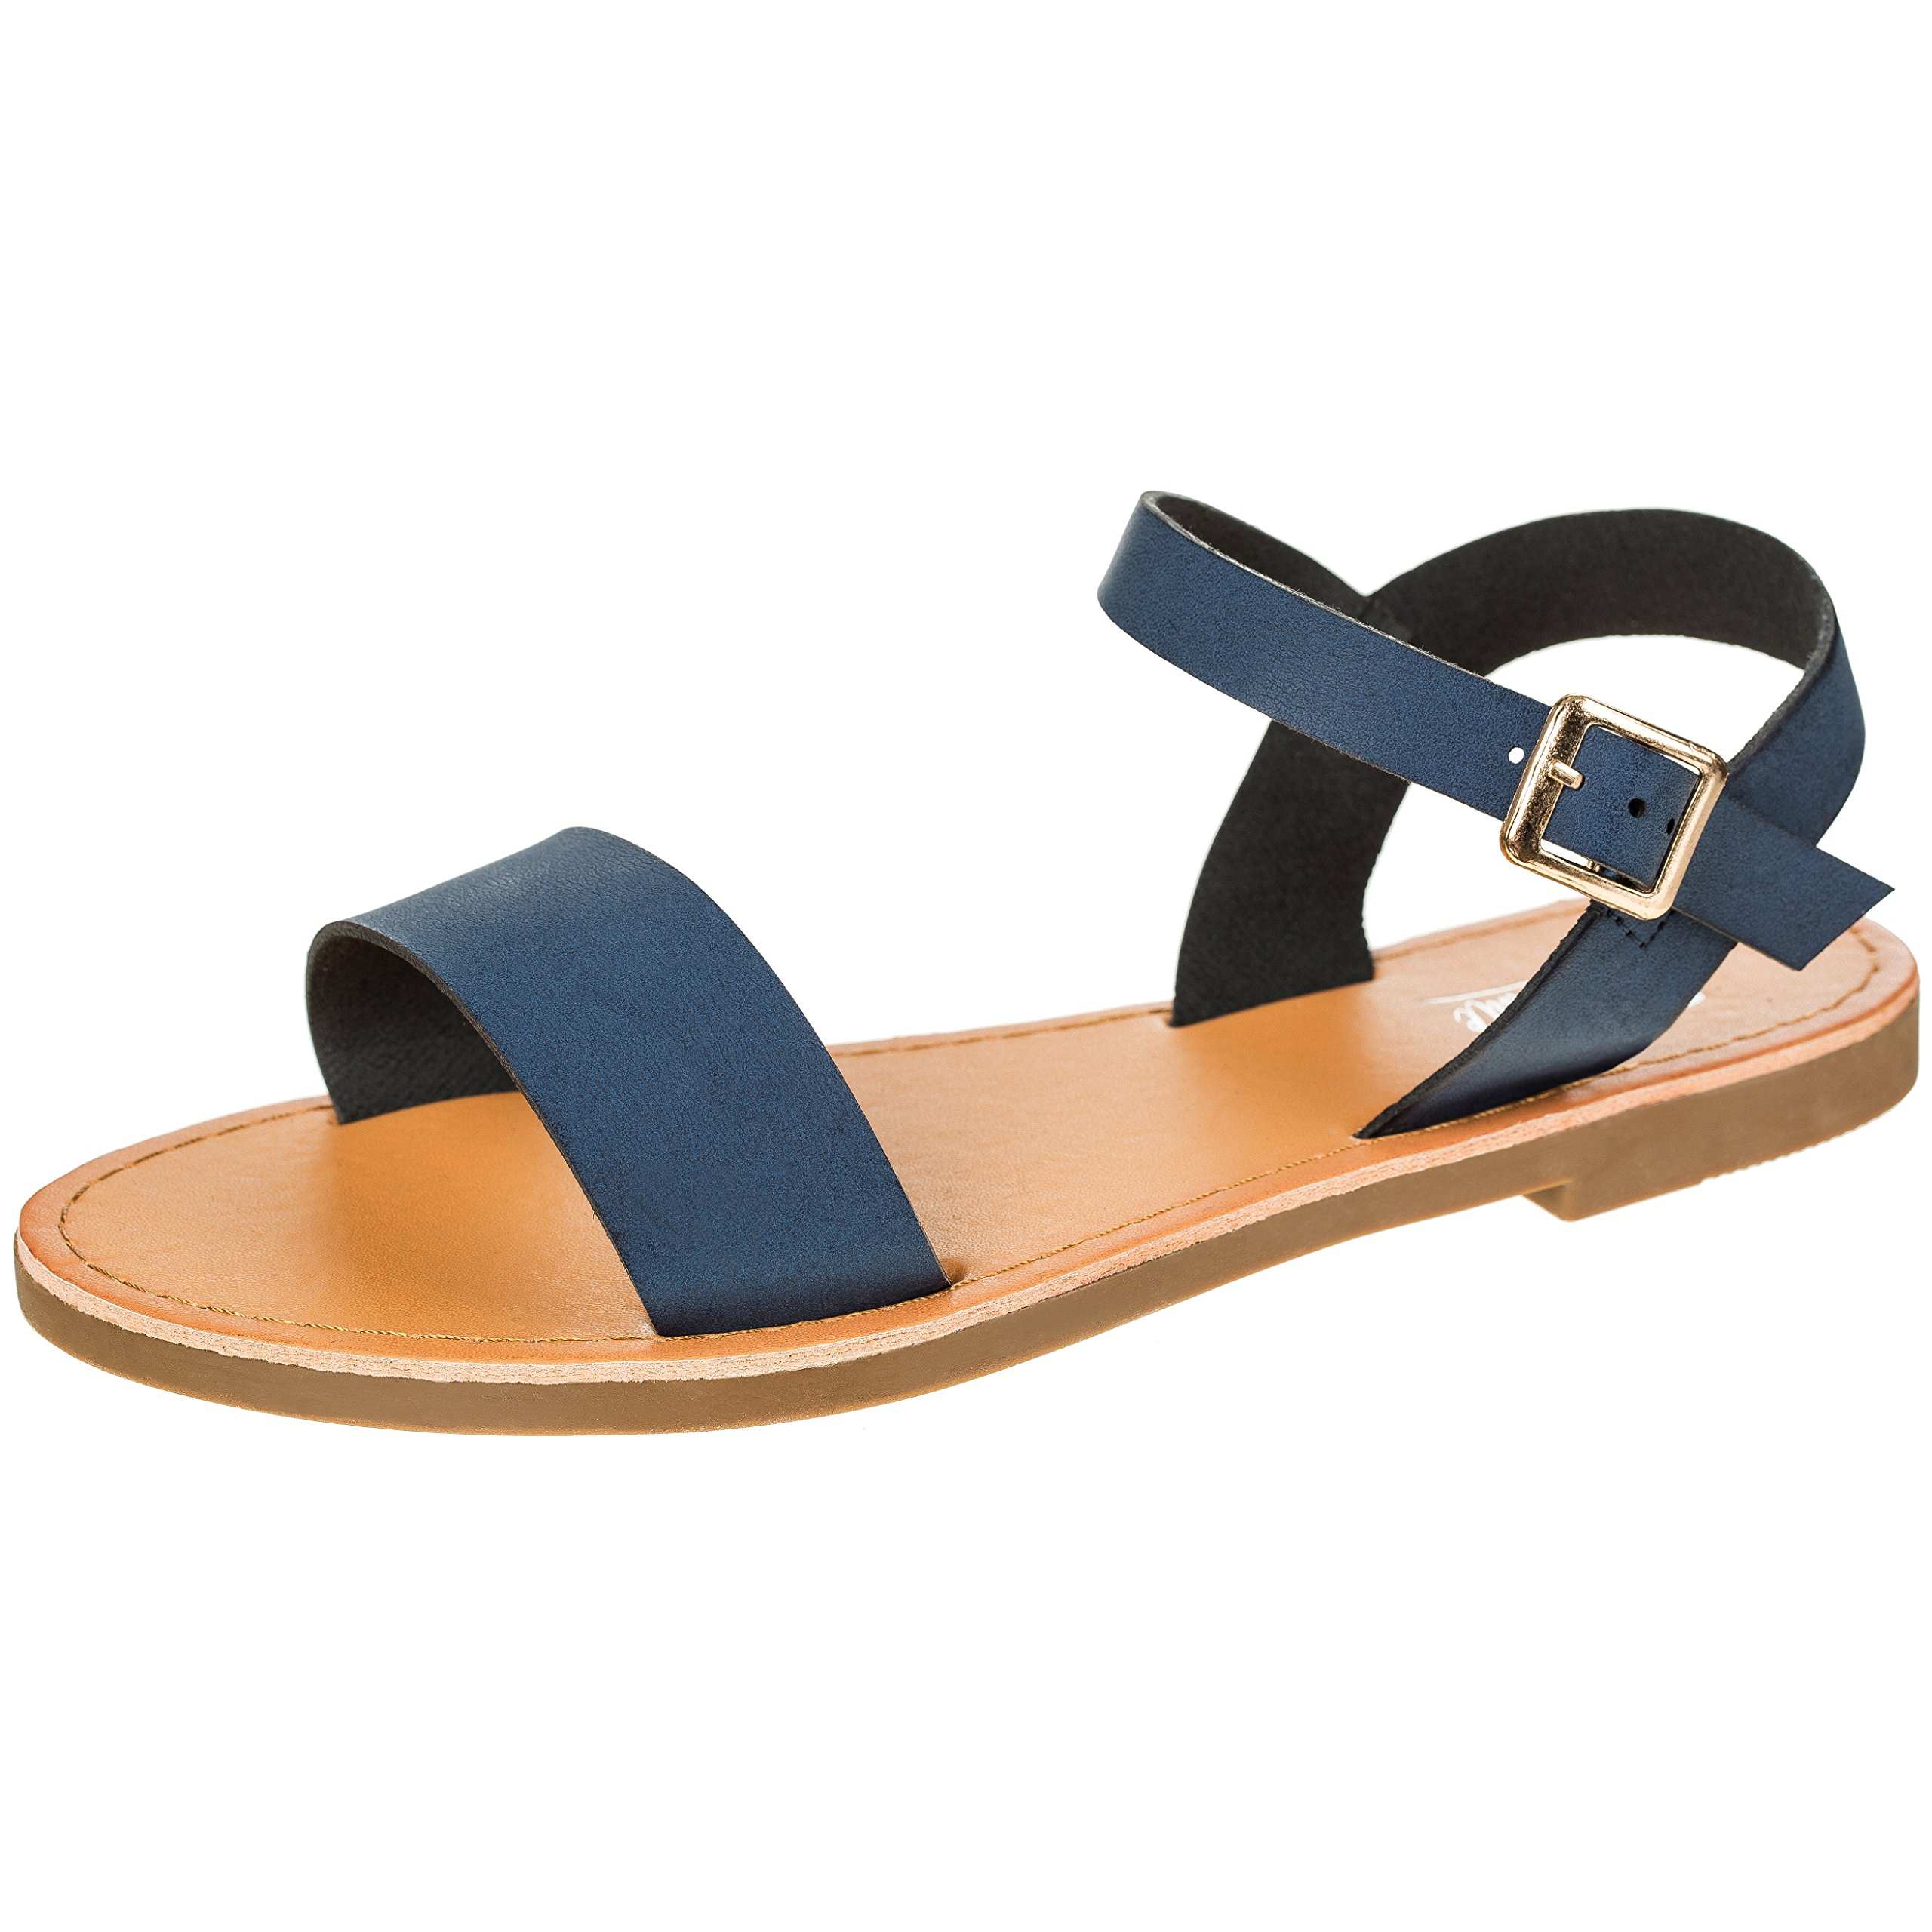 Women's Shoe Comfort Simple Basic Ankle Strap Flat Sandals (8 B(M) US, Navy)